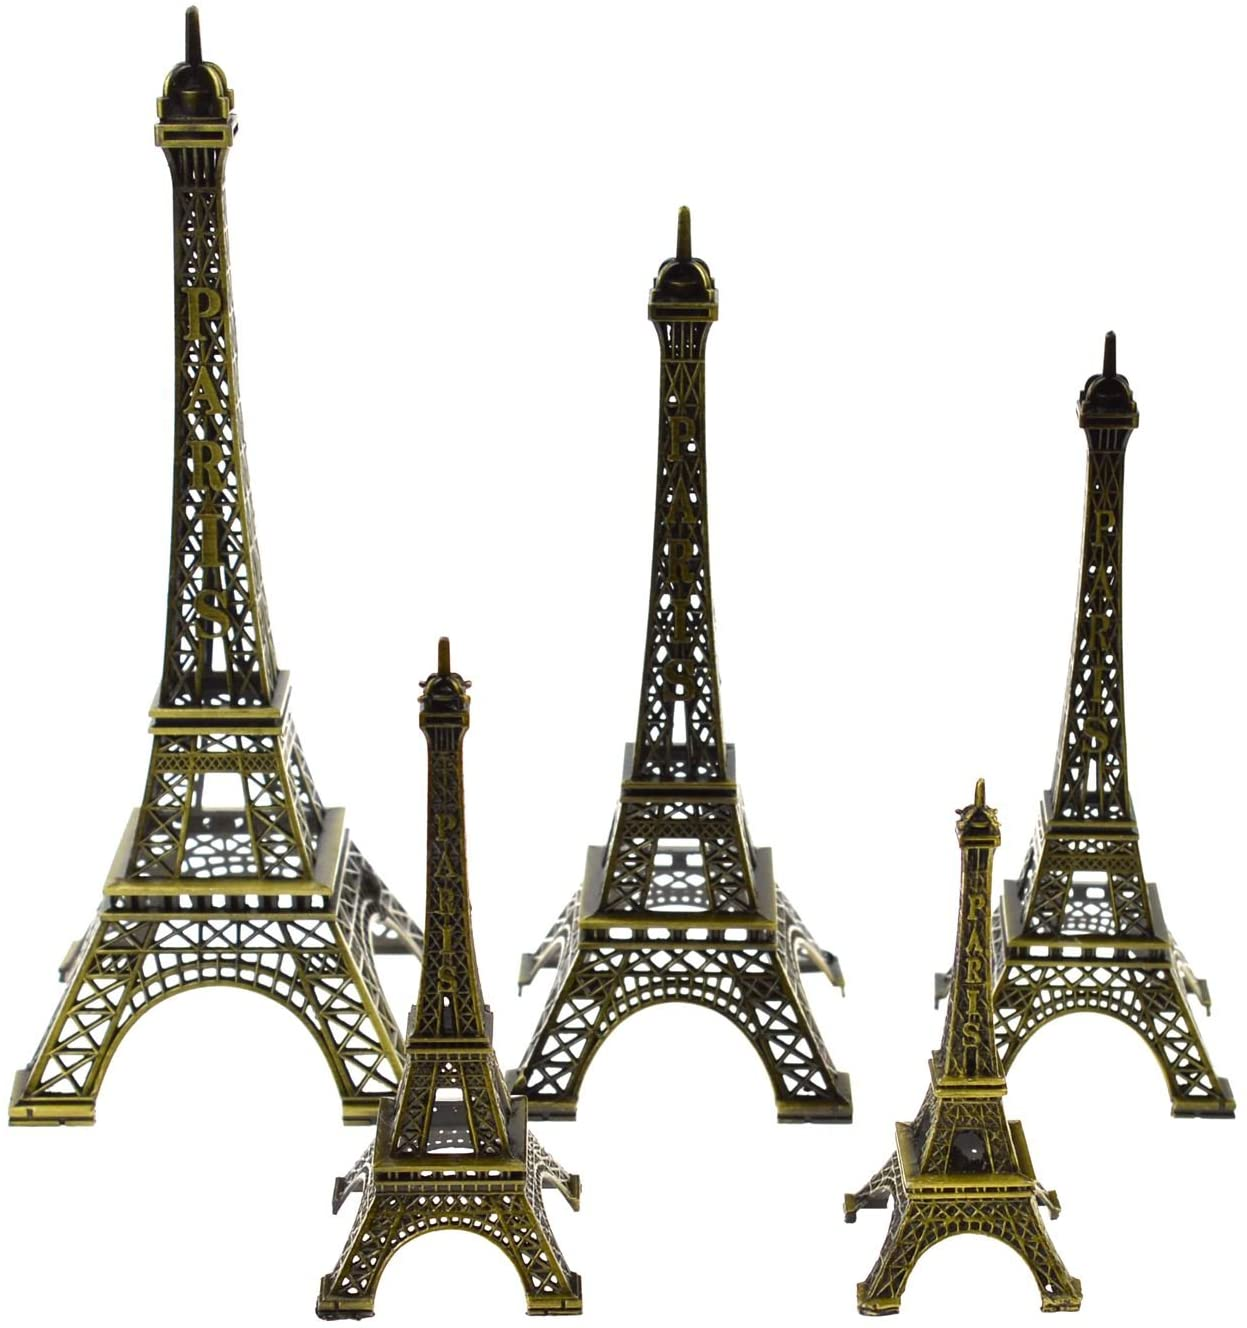 DerBlue 5pcs Eiffel Tower Statue, Metal Paris Eiffel Tower Decor Figurine Replica,Drawing Room Table Decor Stand Holder for Cake Topper,Gifts,Party and Home Decoration